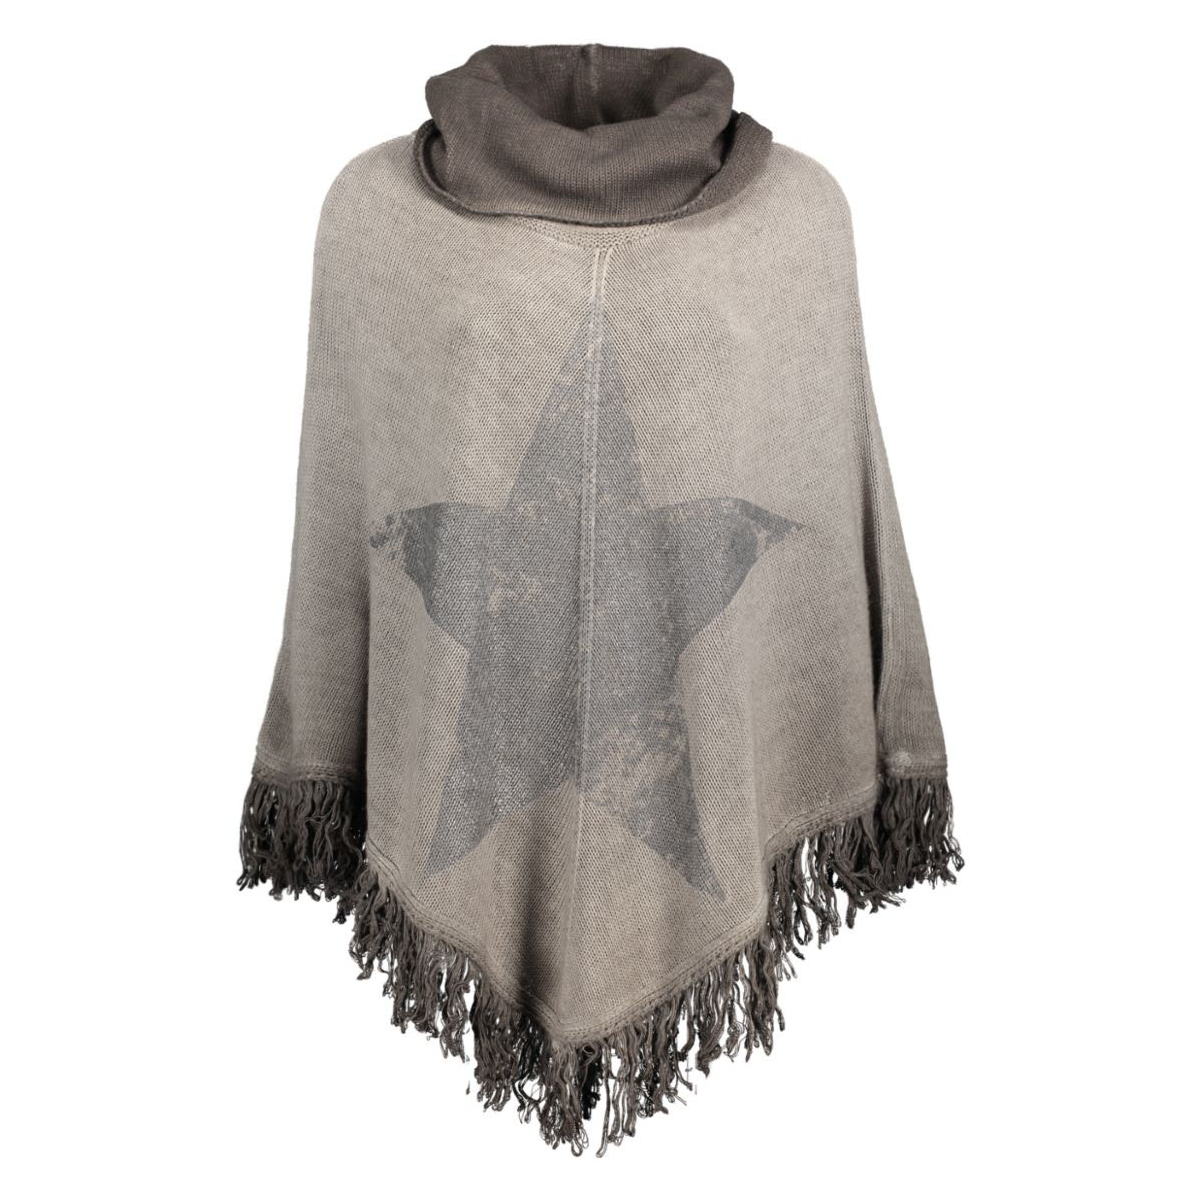 dst 00137 key largo poncho 1606